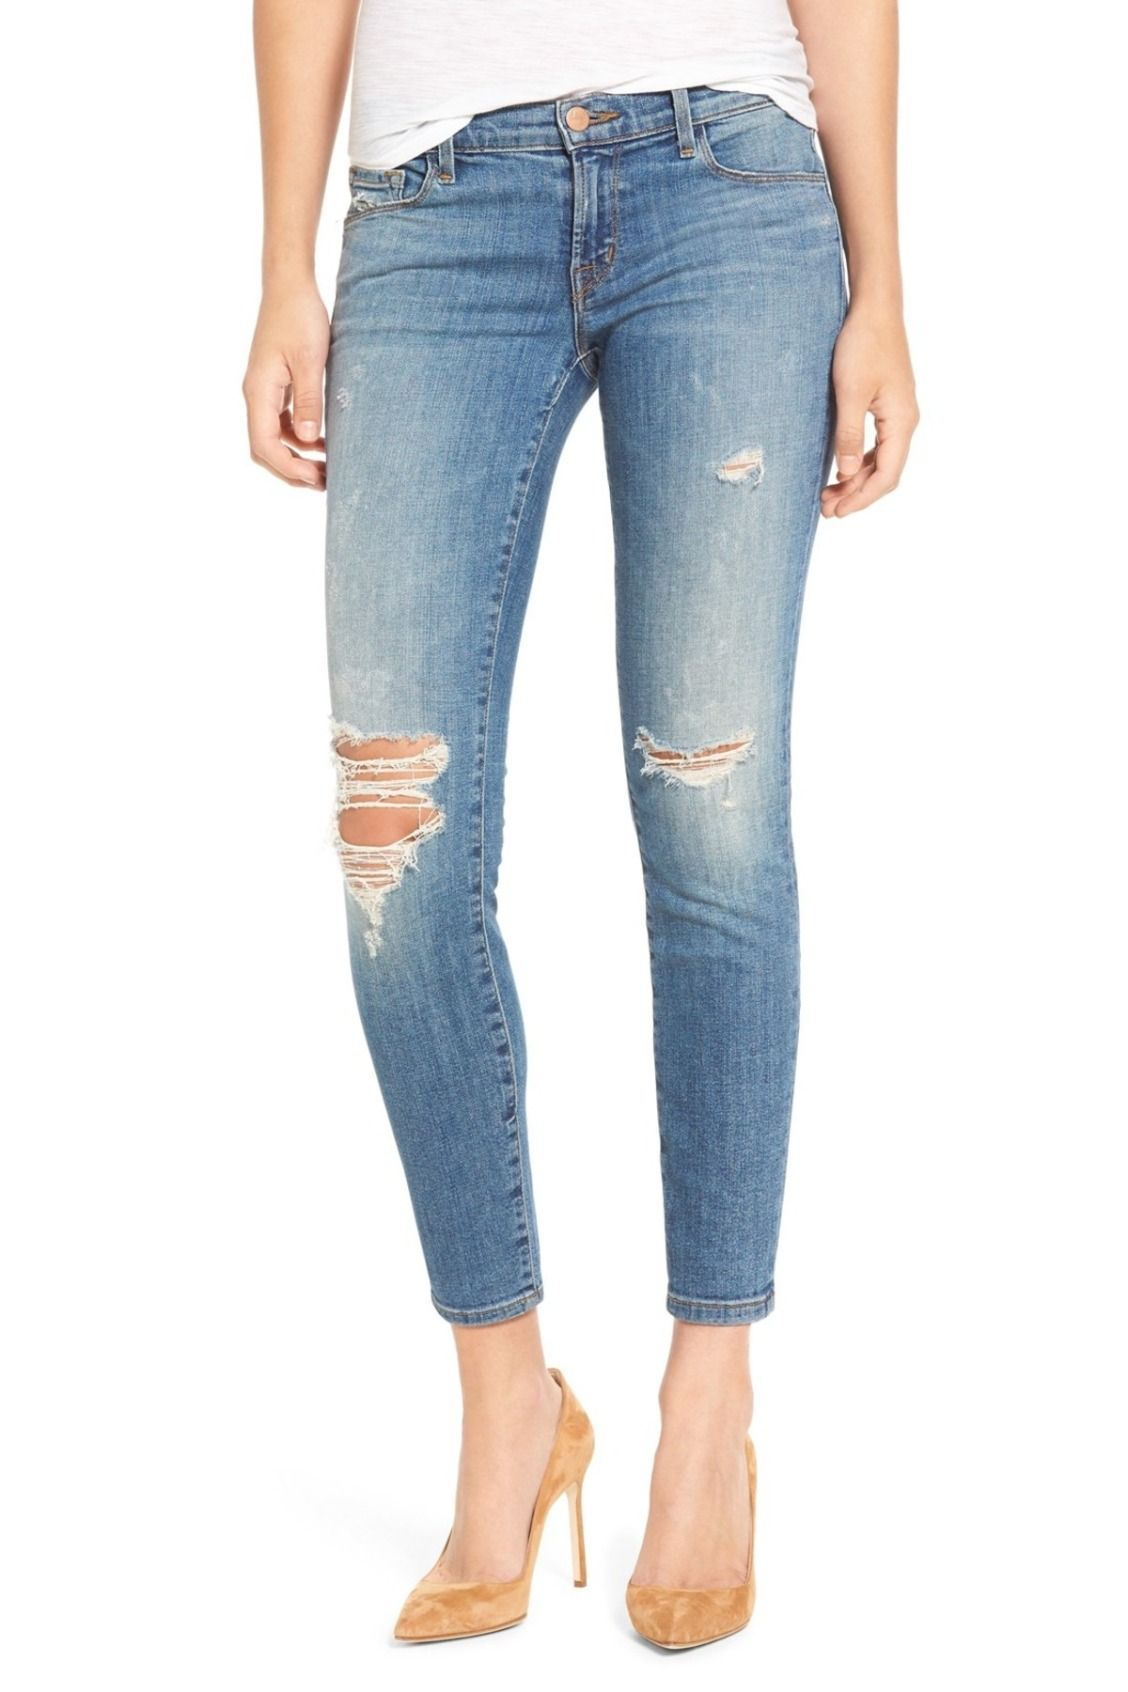 eca99c909 You'll live in these J Brand Ripped Crop Skinny Jeans | Fashion style